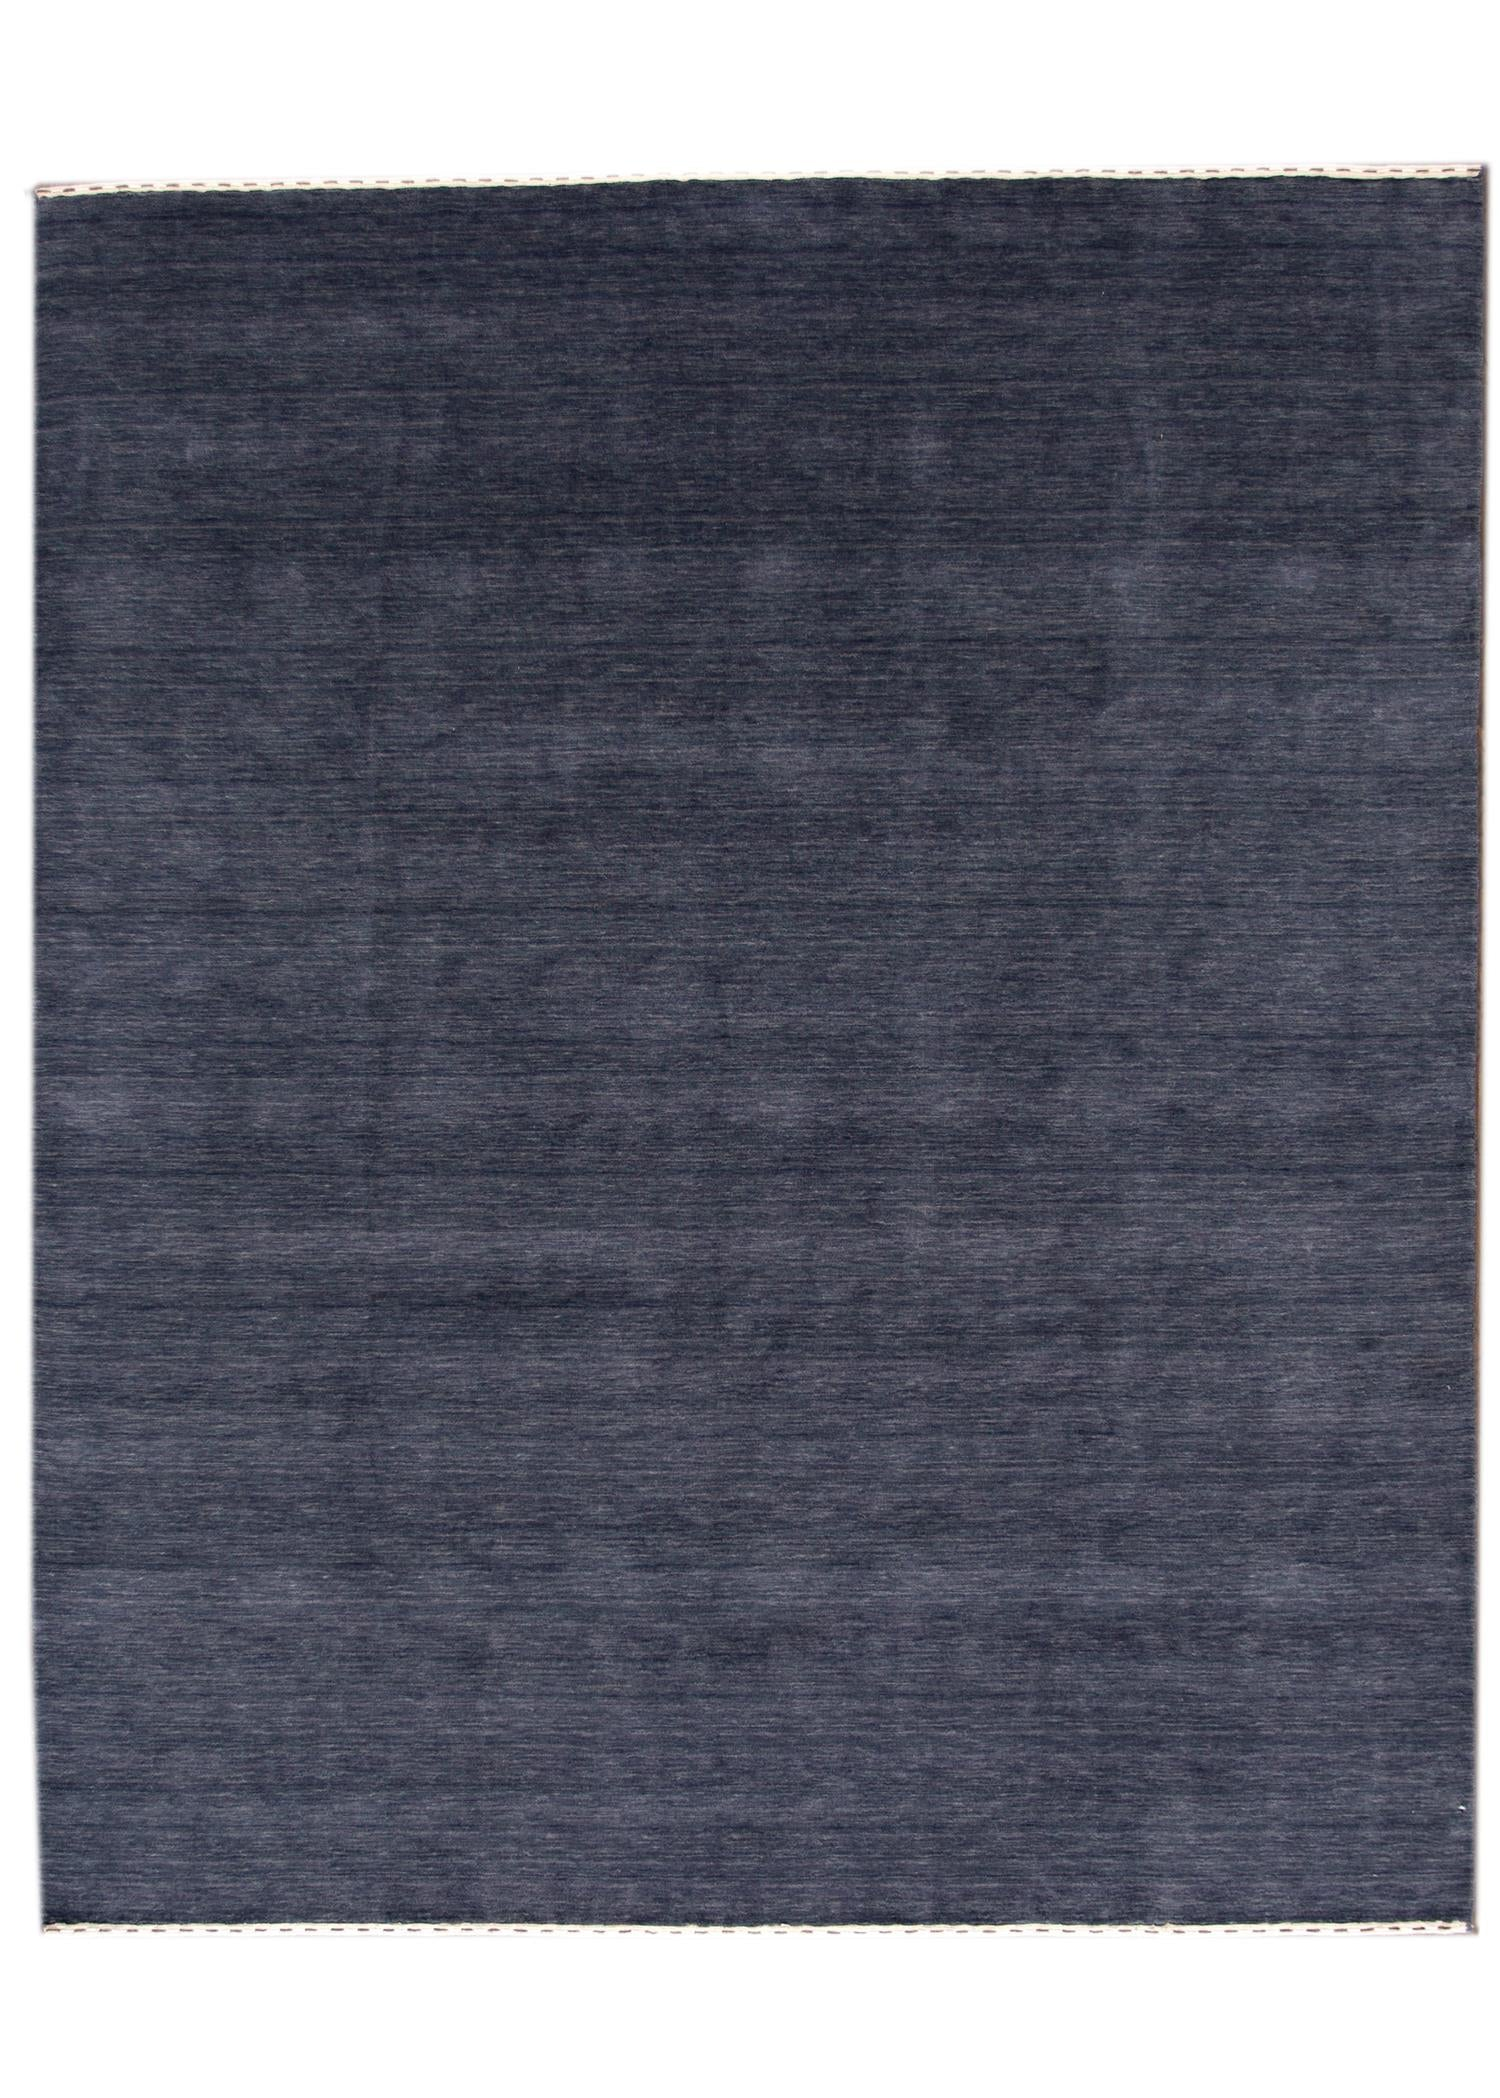 Contemporary Gabbeh Rug, 8X10